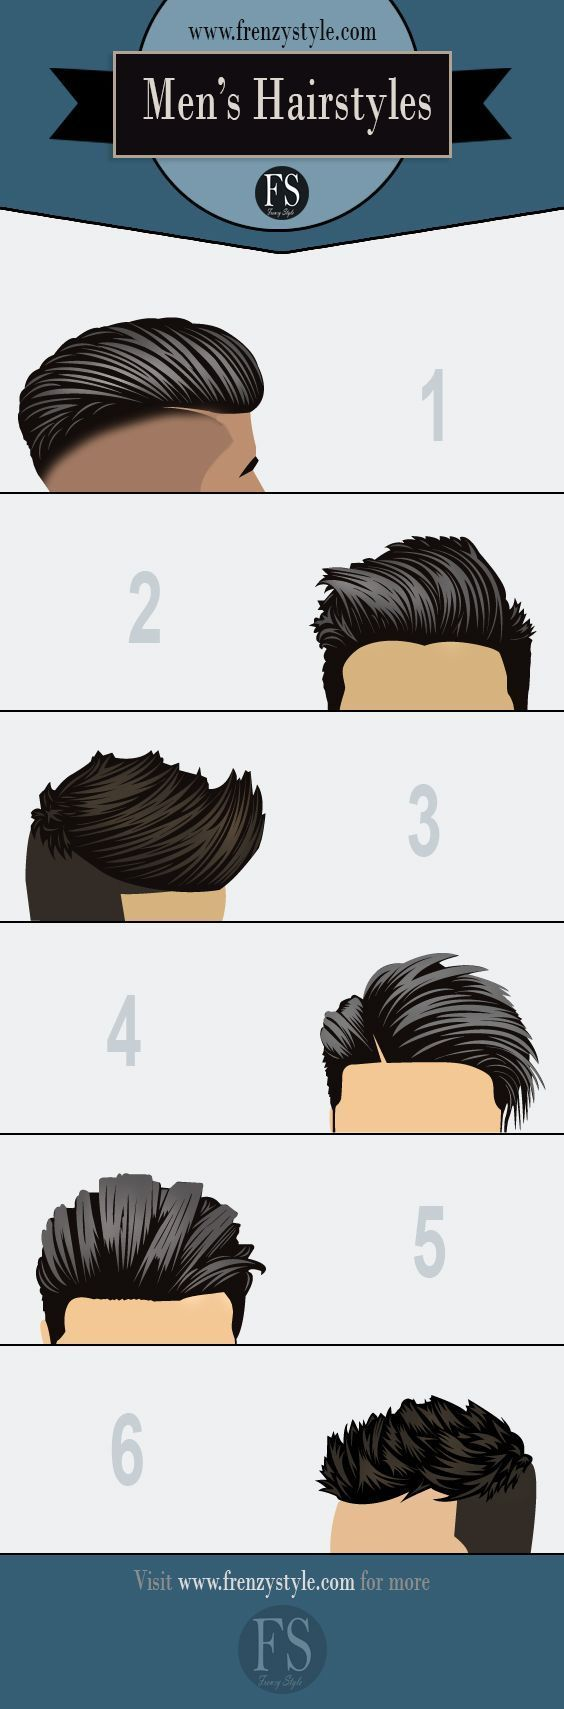 Photo of 6 Popular Men's Hairstyles and Haircuts and the products used to make them #ad